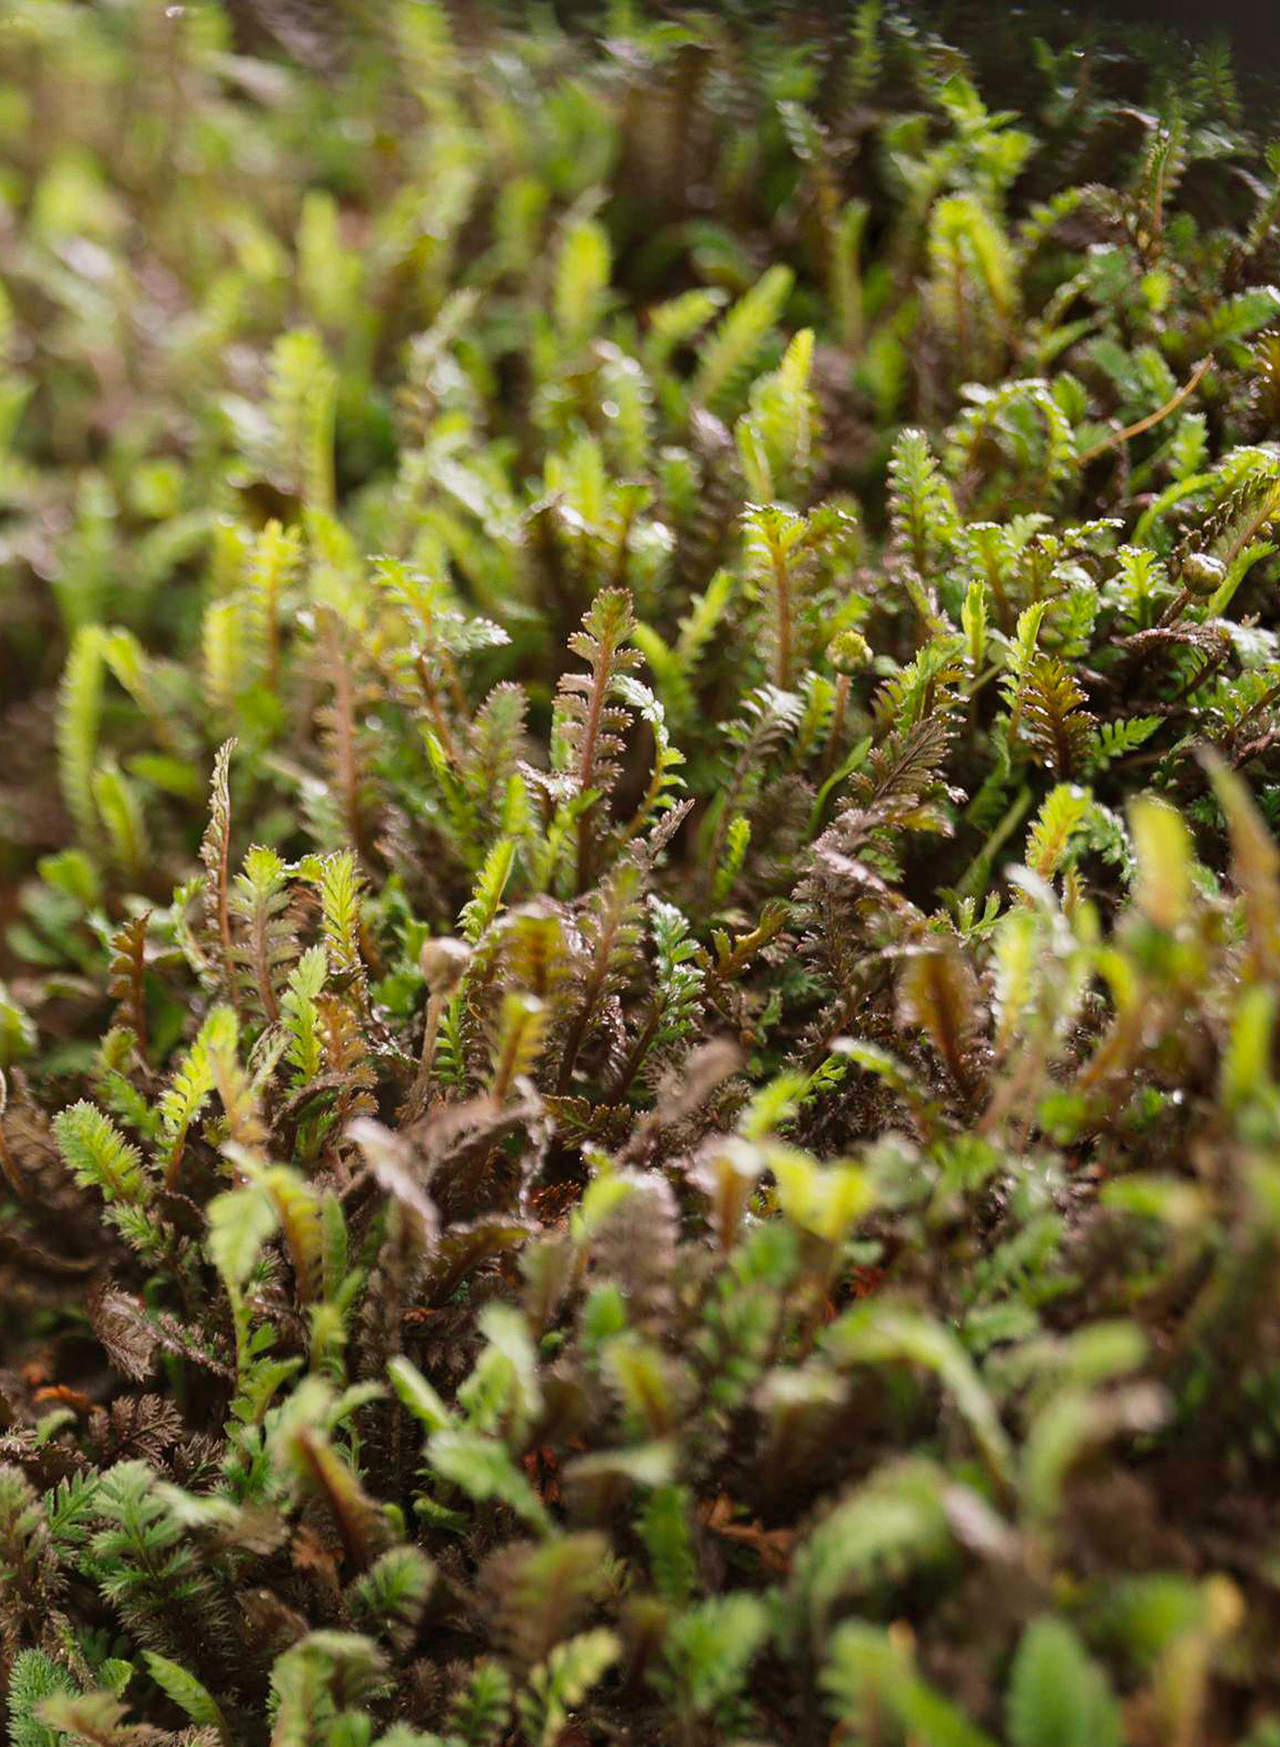 leptinella squalida cover ground plant